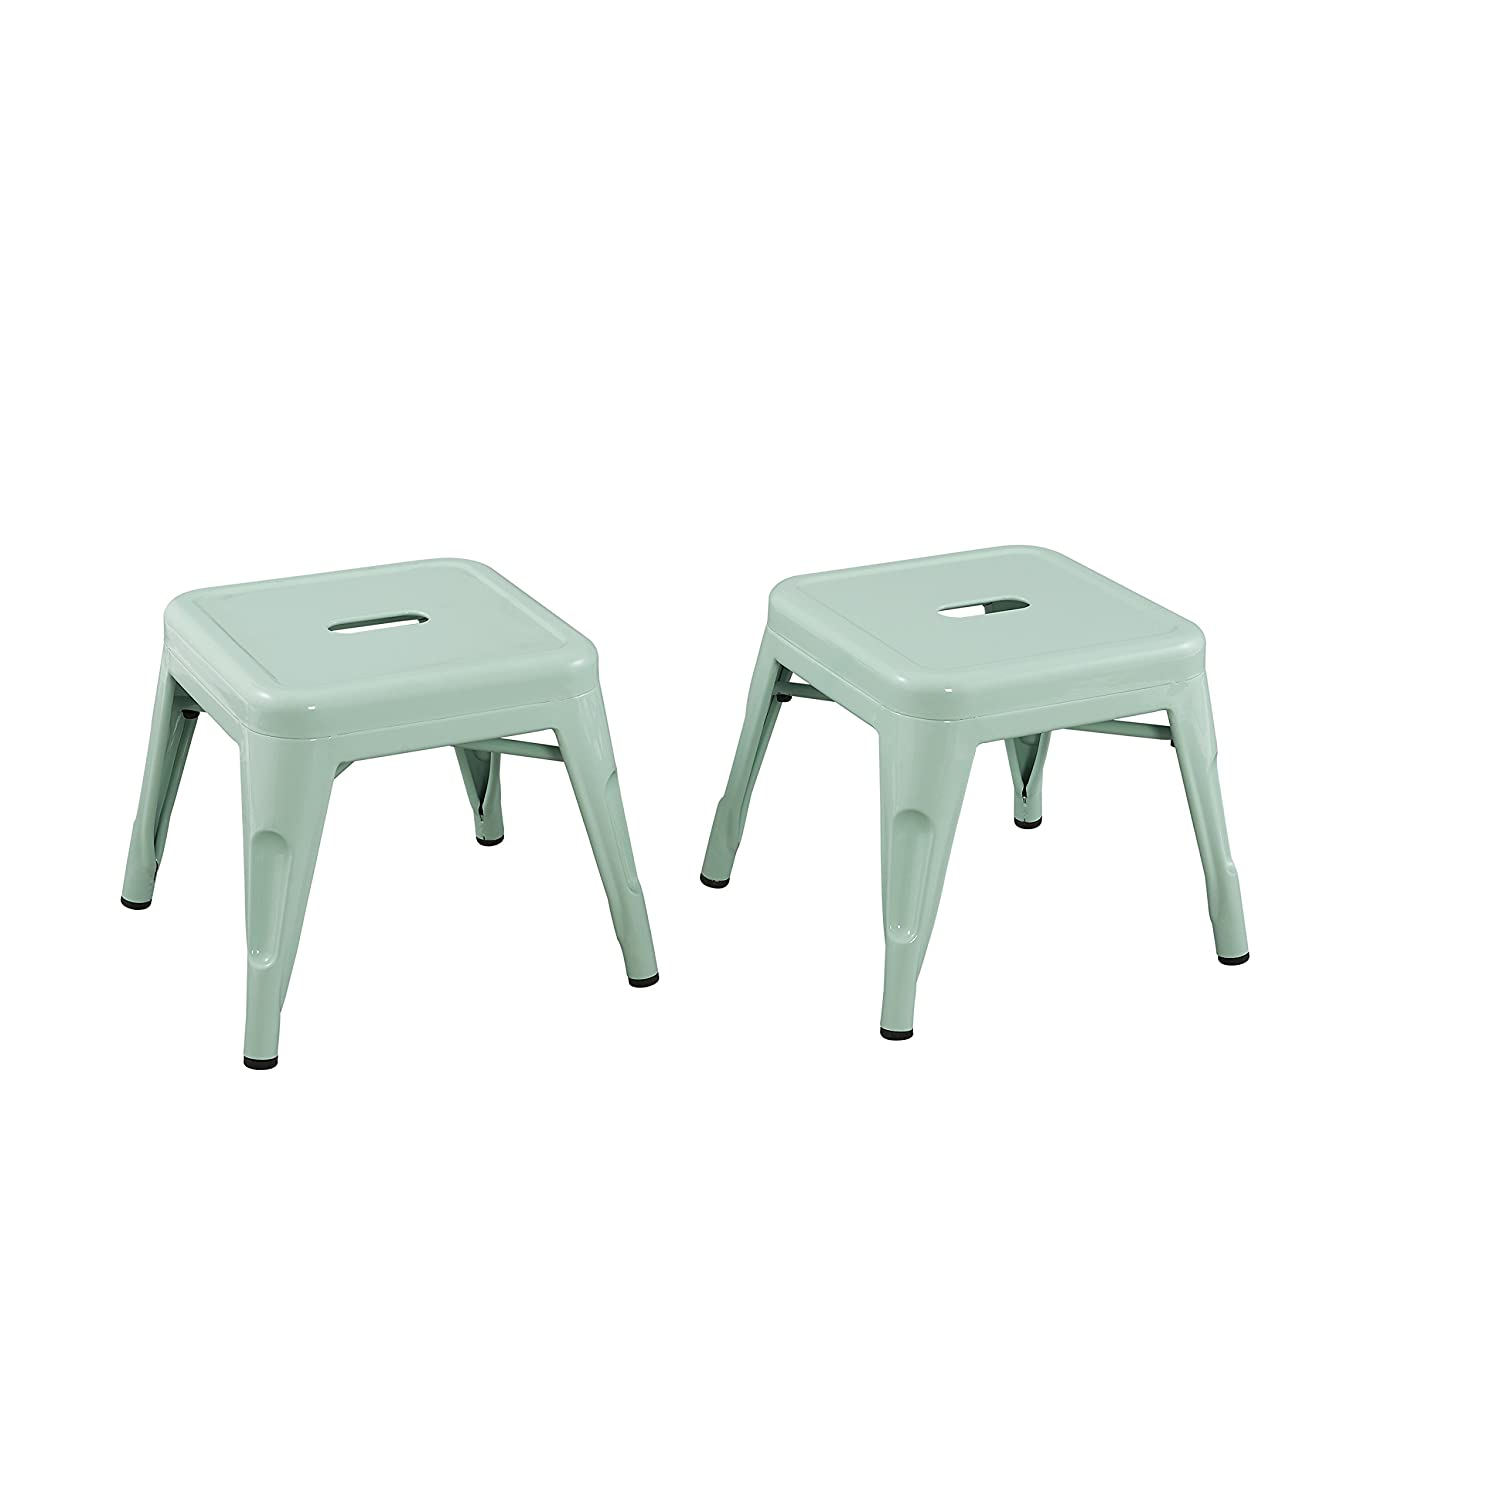 Phenomenal Reservation Seating Kids Steel Stool Mint Green One Size Alphanode Cool Chair Designs And Ideas Alphanodeonline